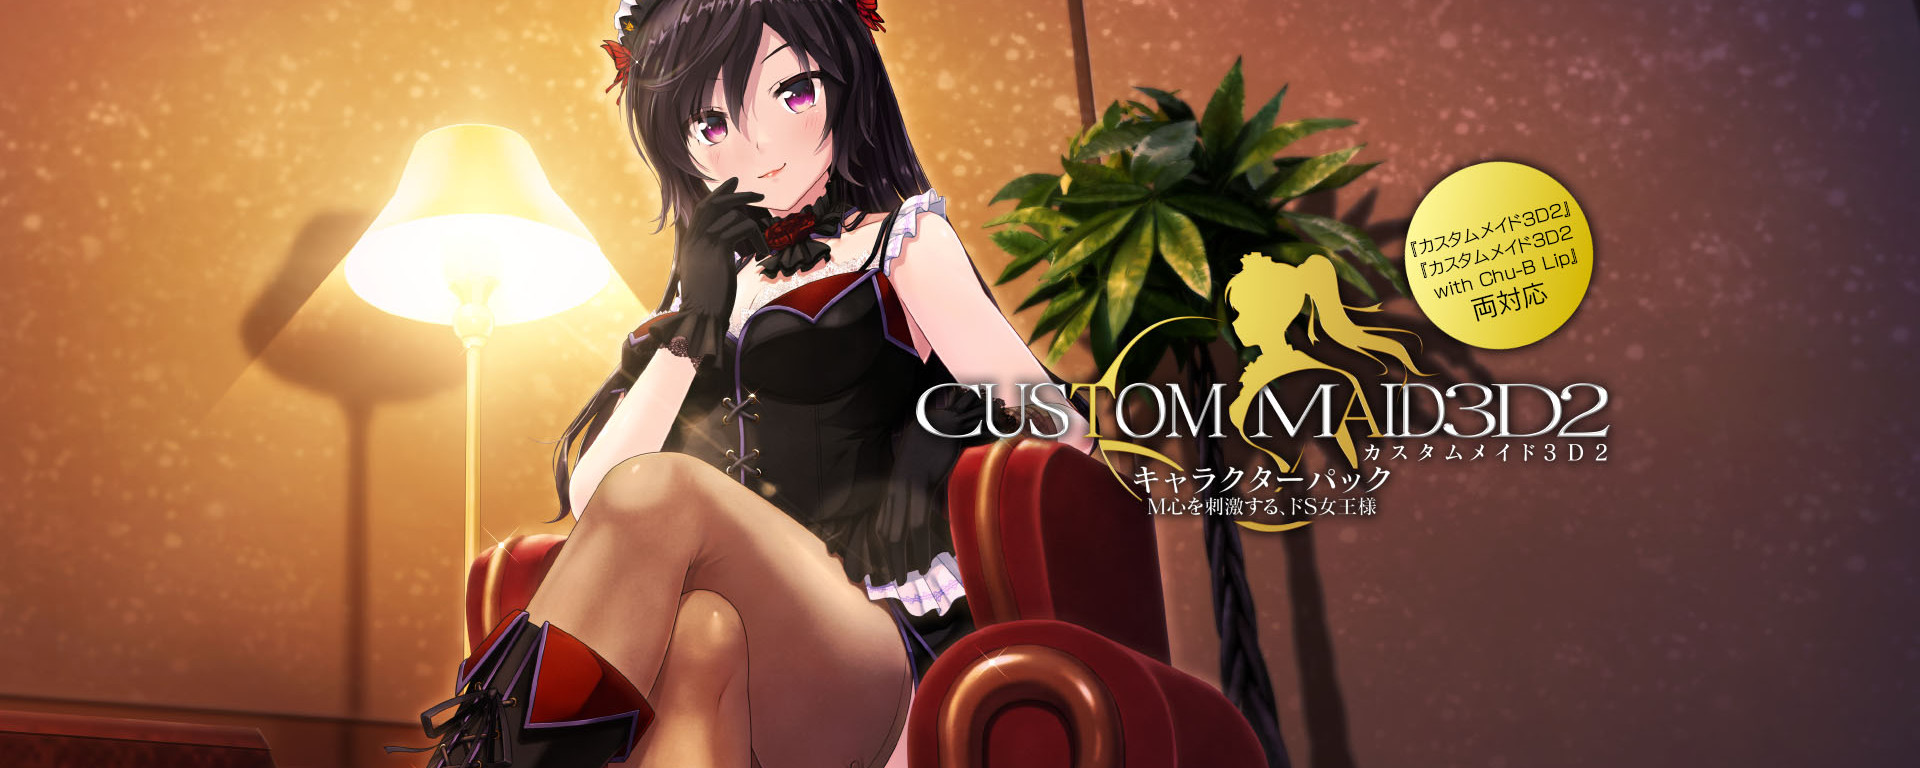 Custom Maid 3D 2 Torrent Free Download